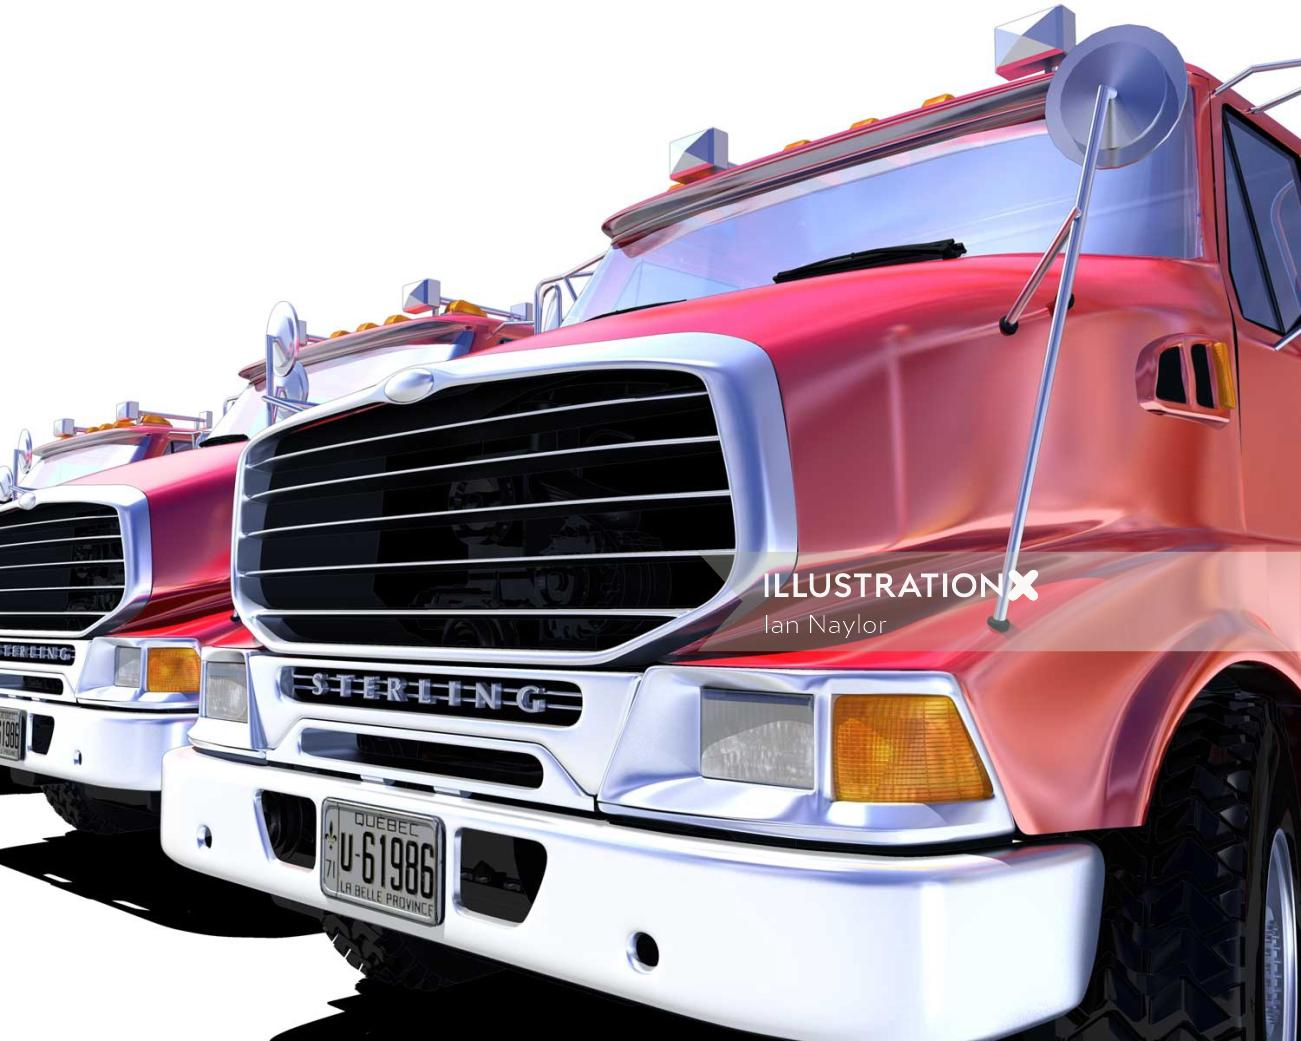 Truck illustration by Ian Naylor